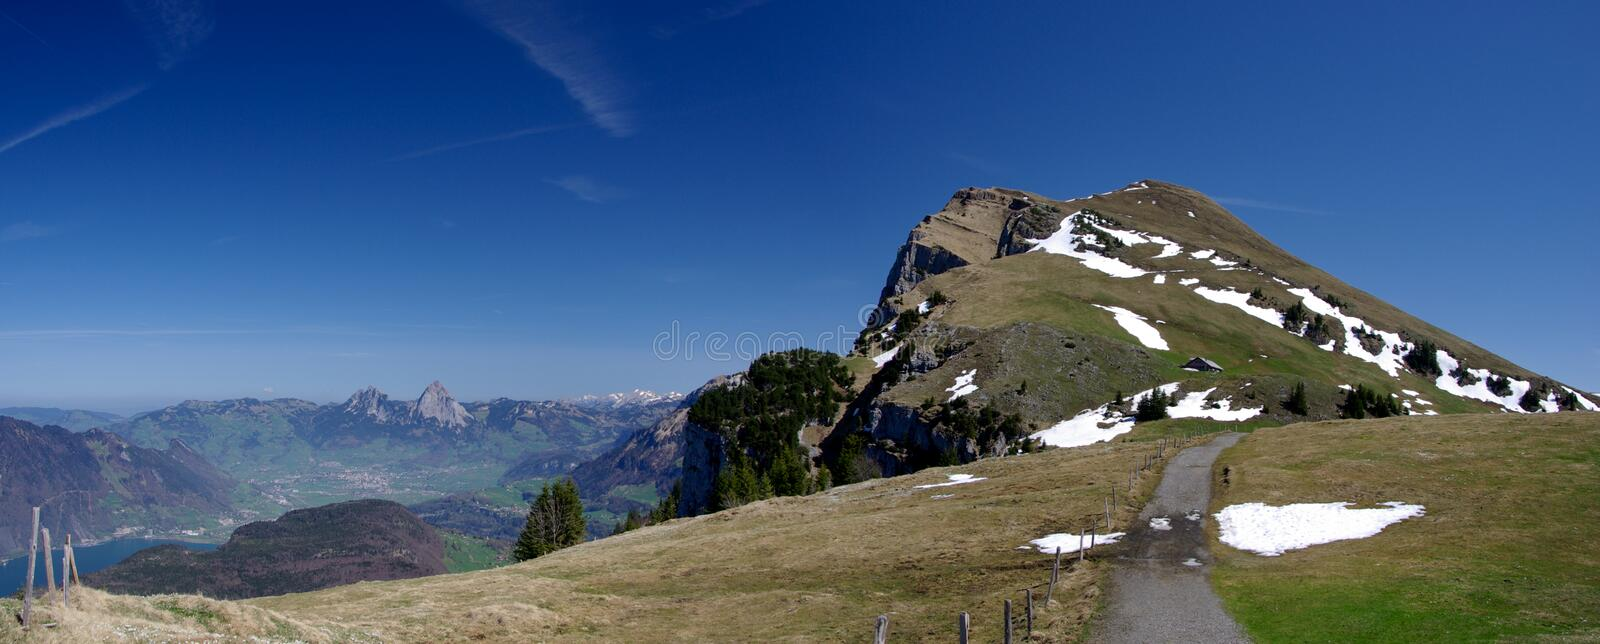 Niederbauern Mountain Royalty Free Stock Photography